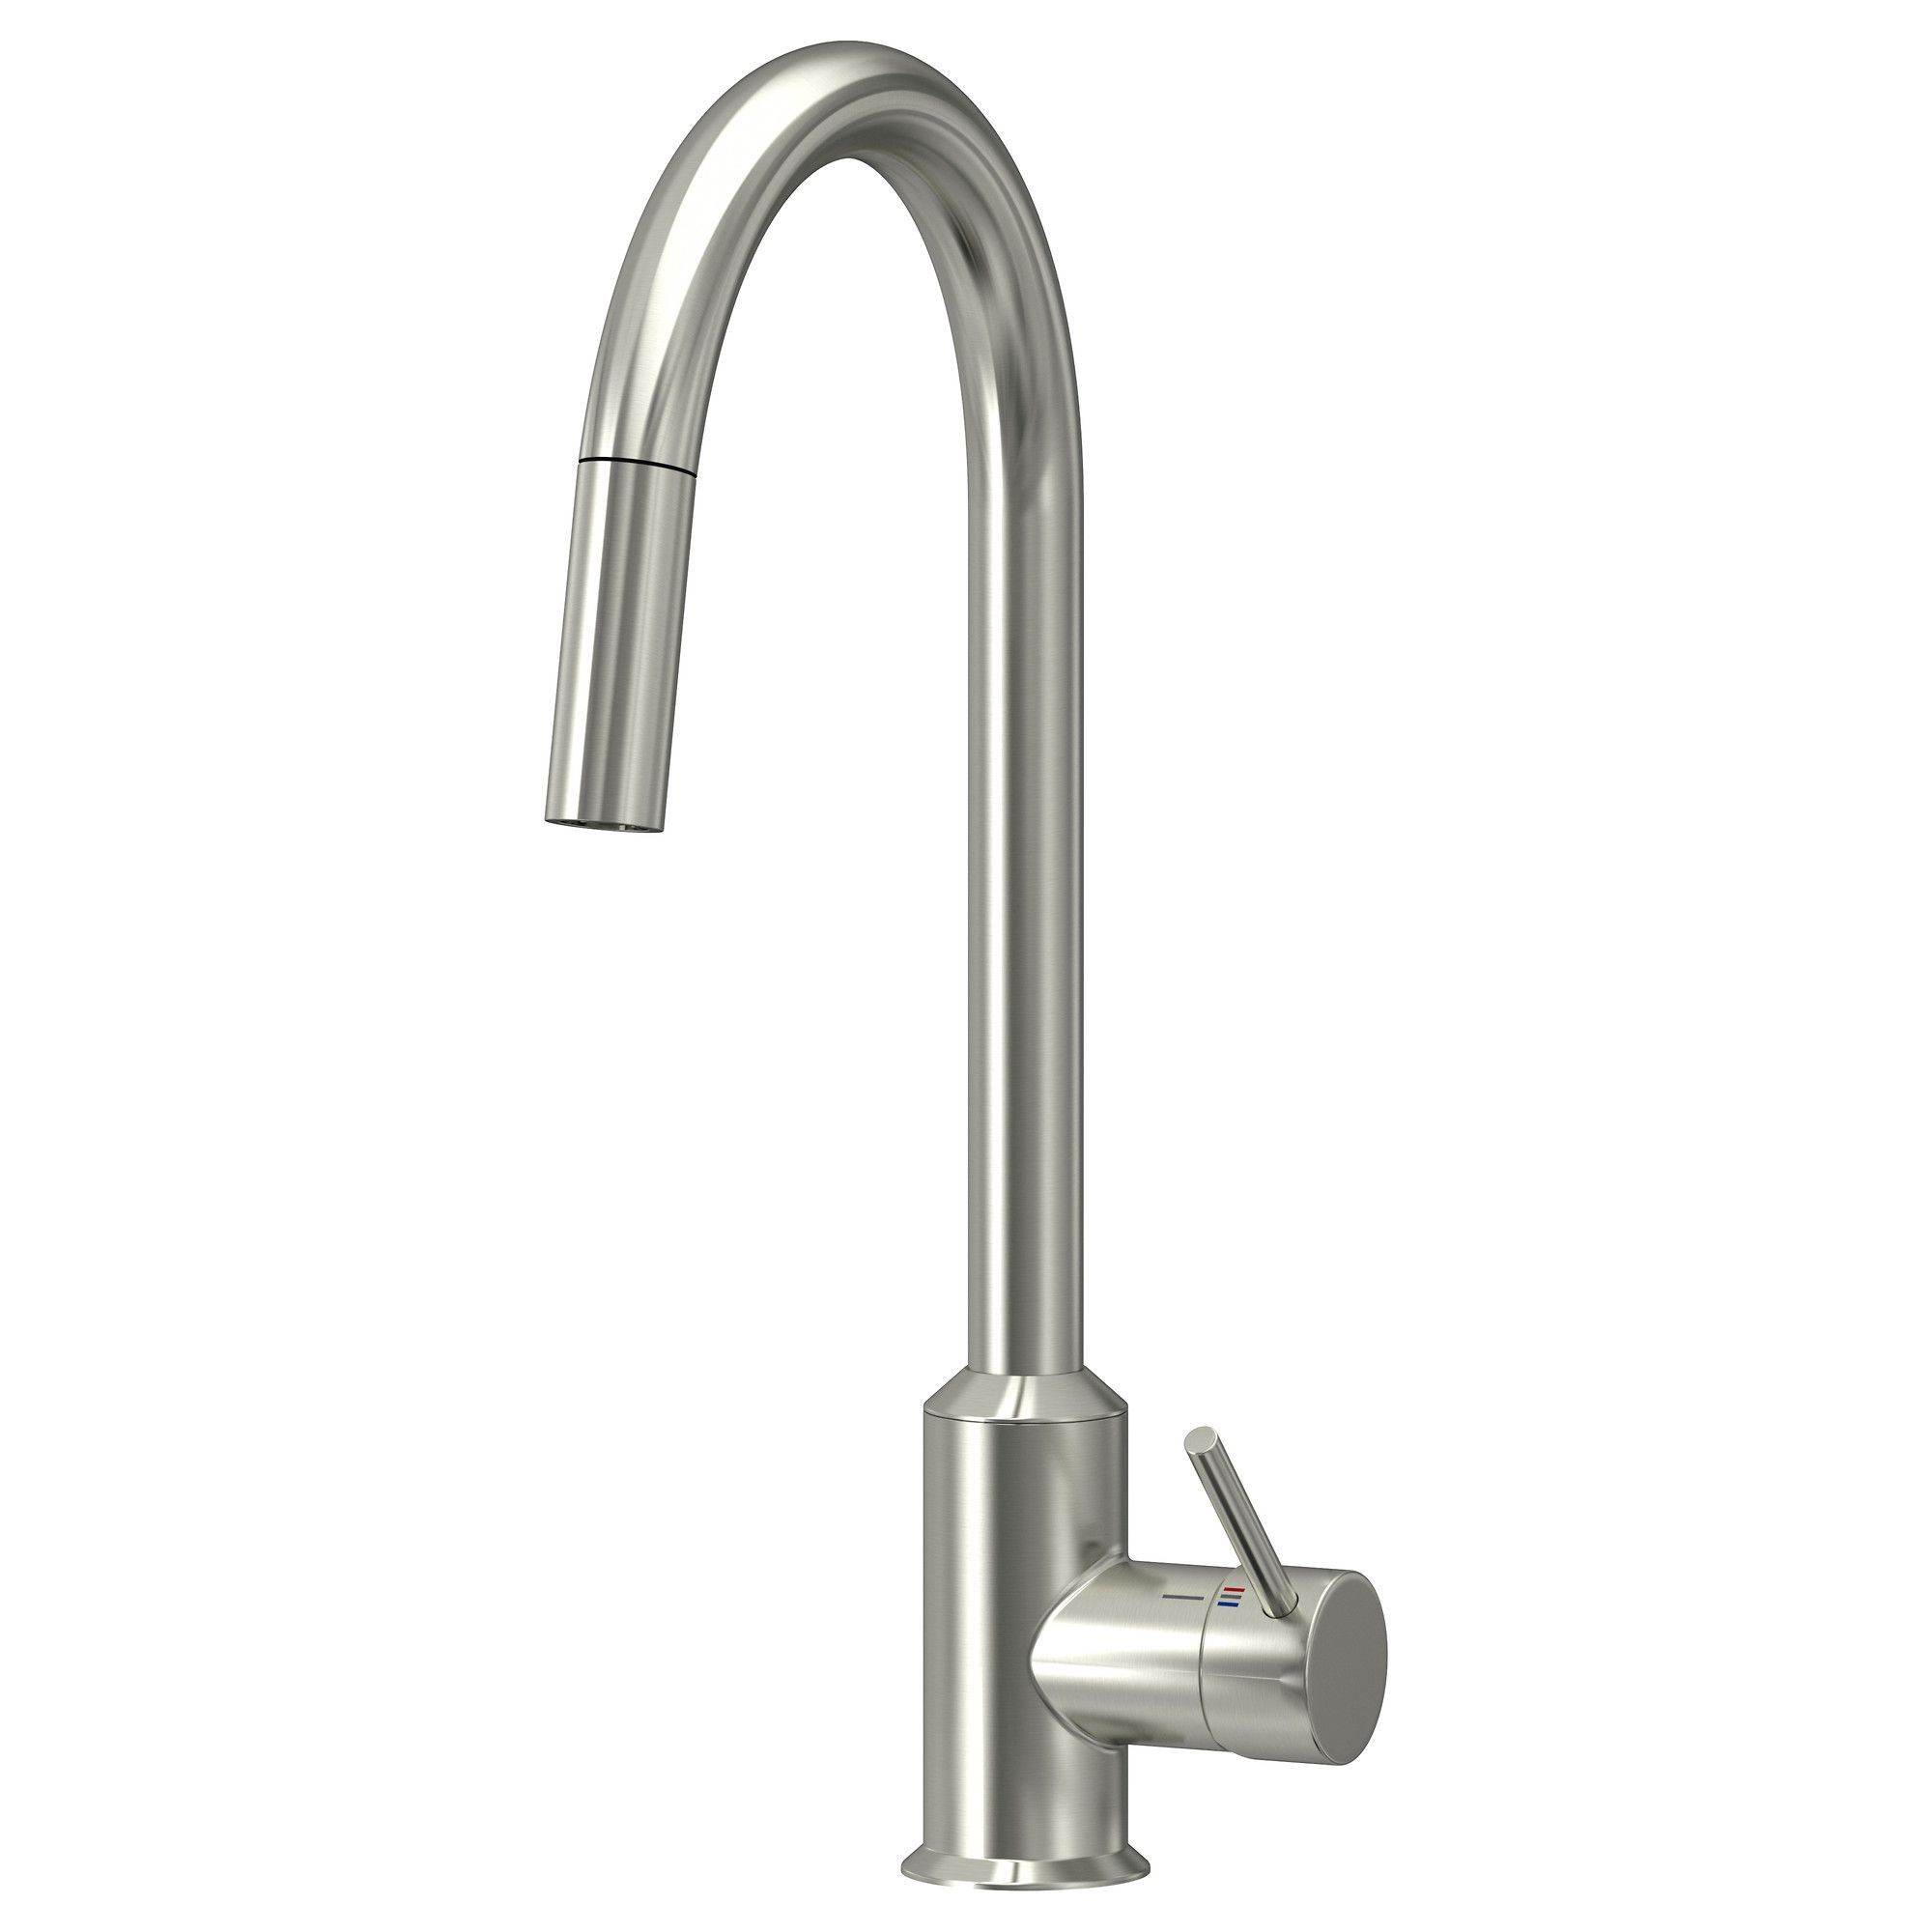 Ringsk r kitchen faucet with pull out spout ikea for Best faucet for kitchen sink